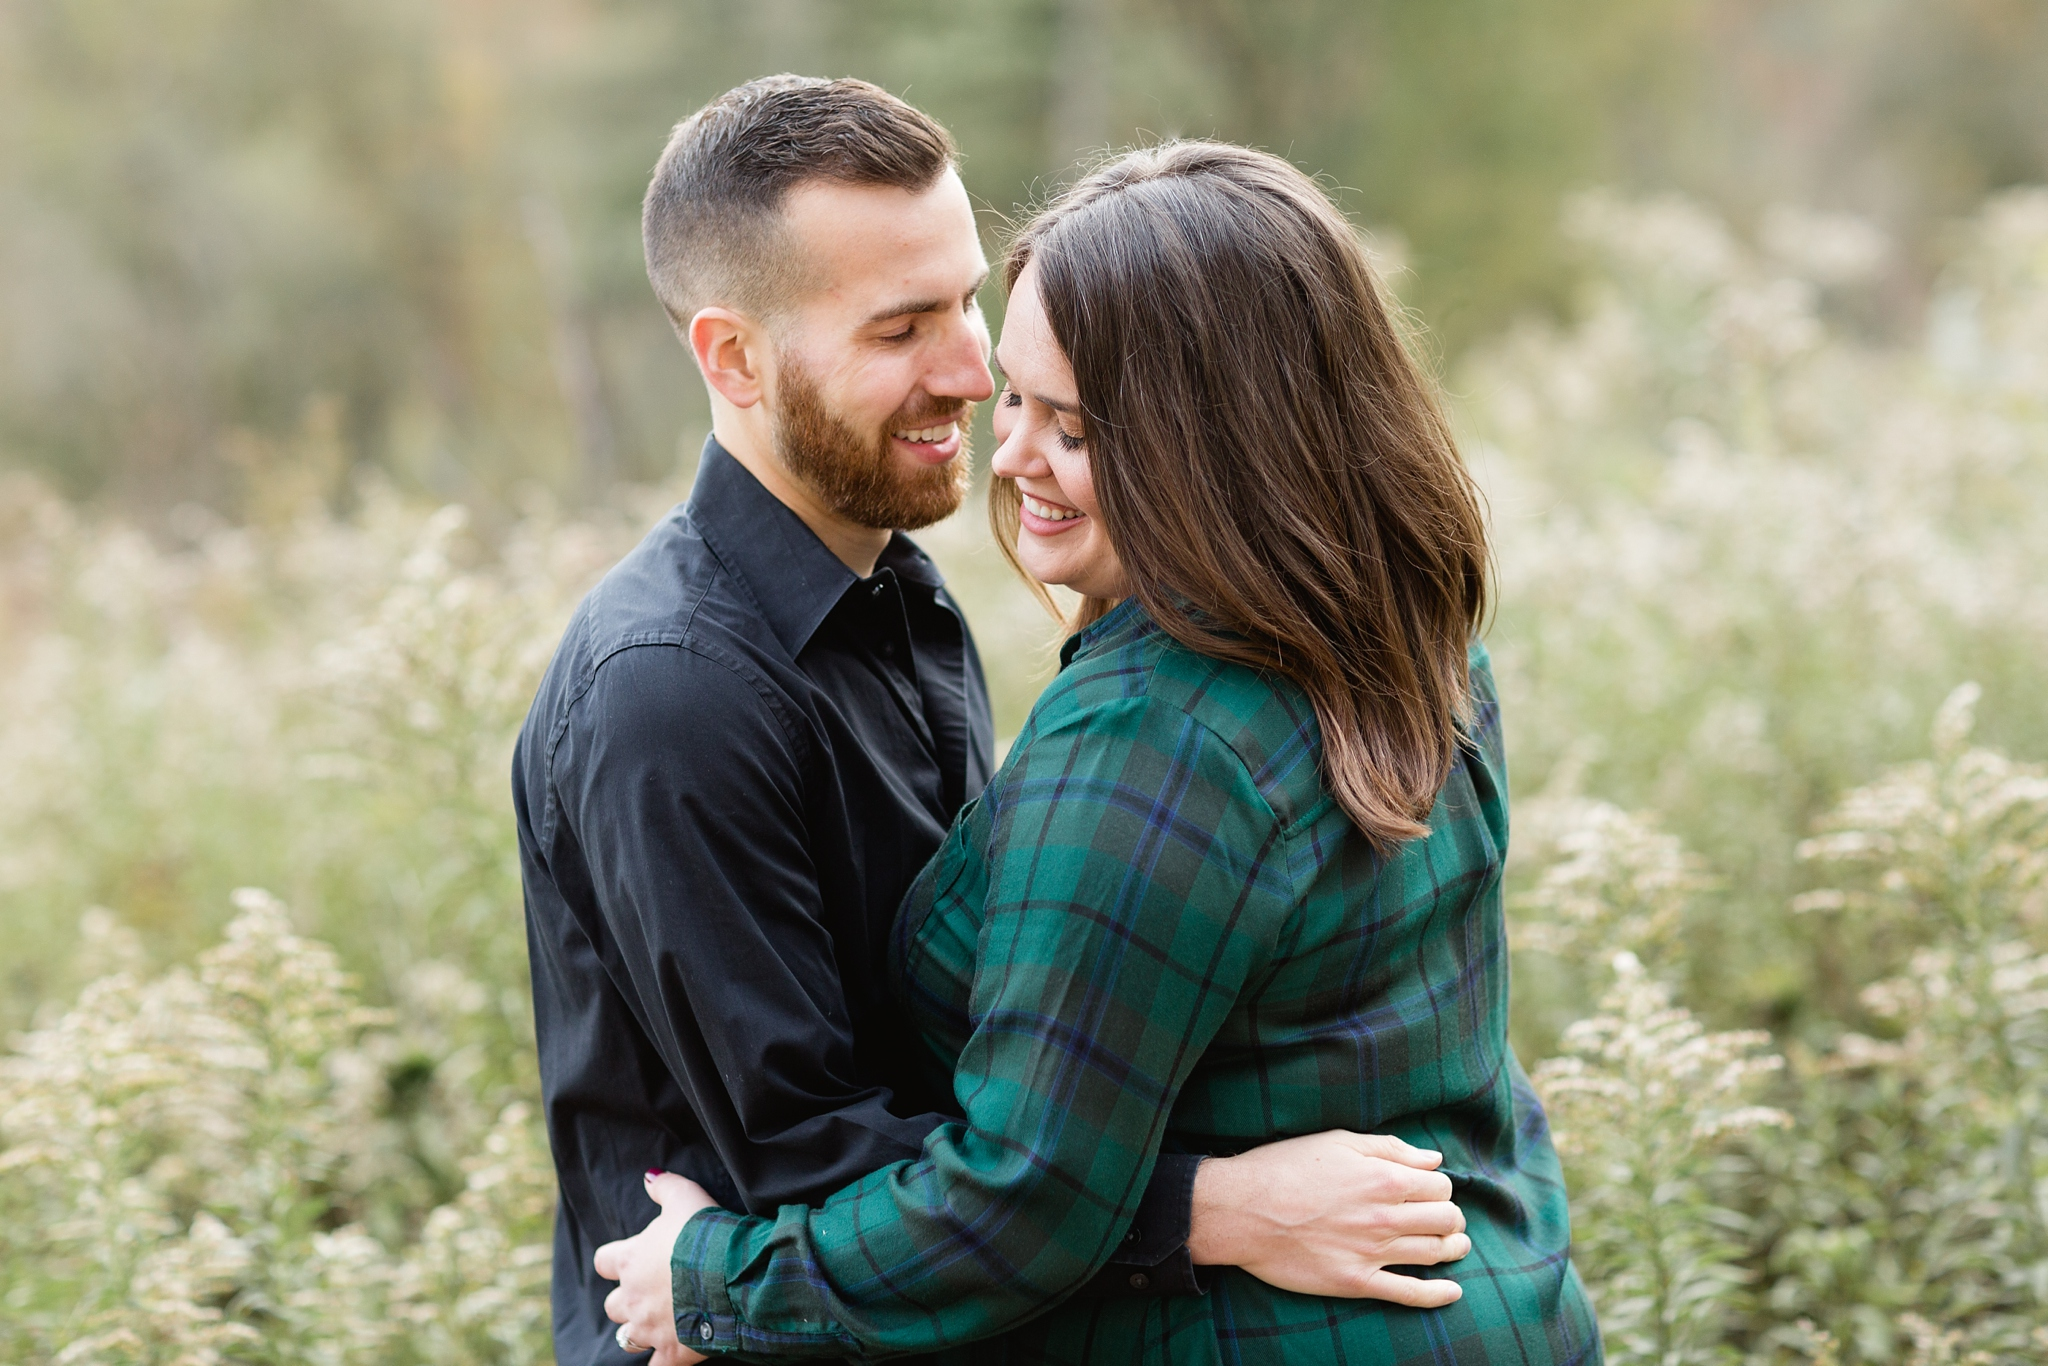 middle_creek_wildlife_engagement_session_13.jpg